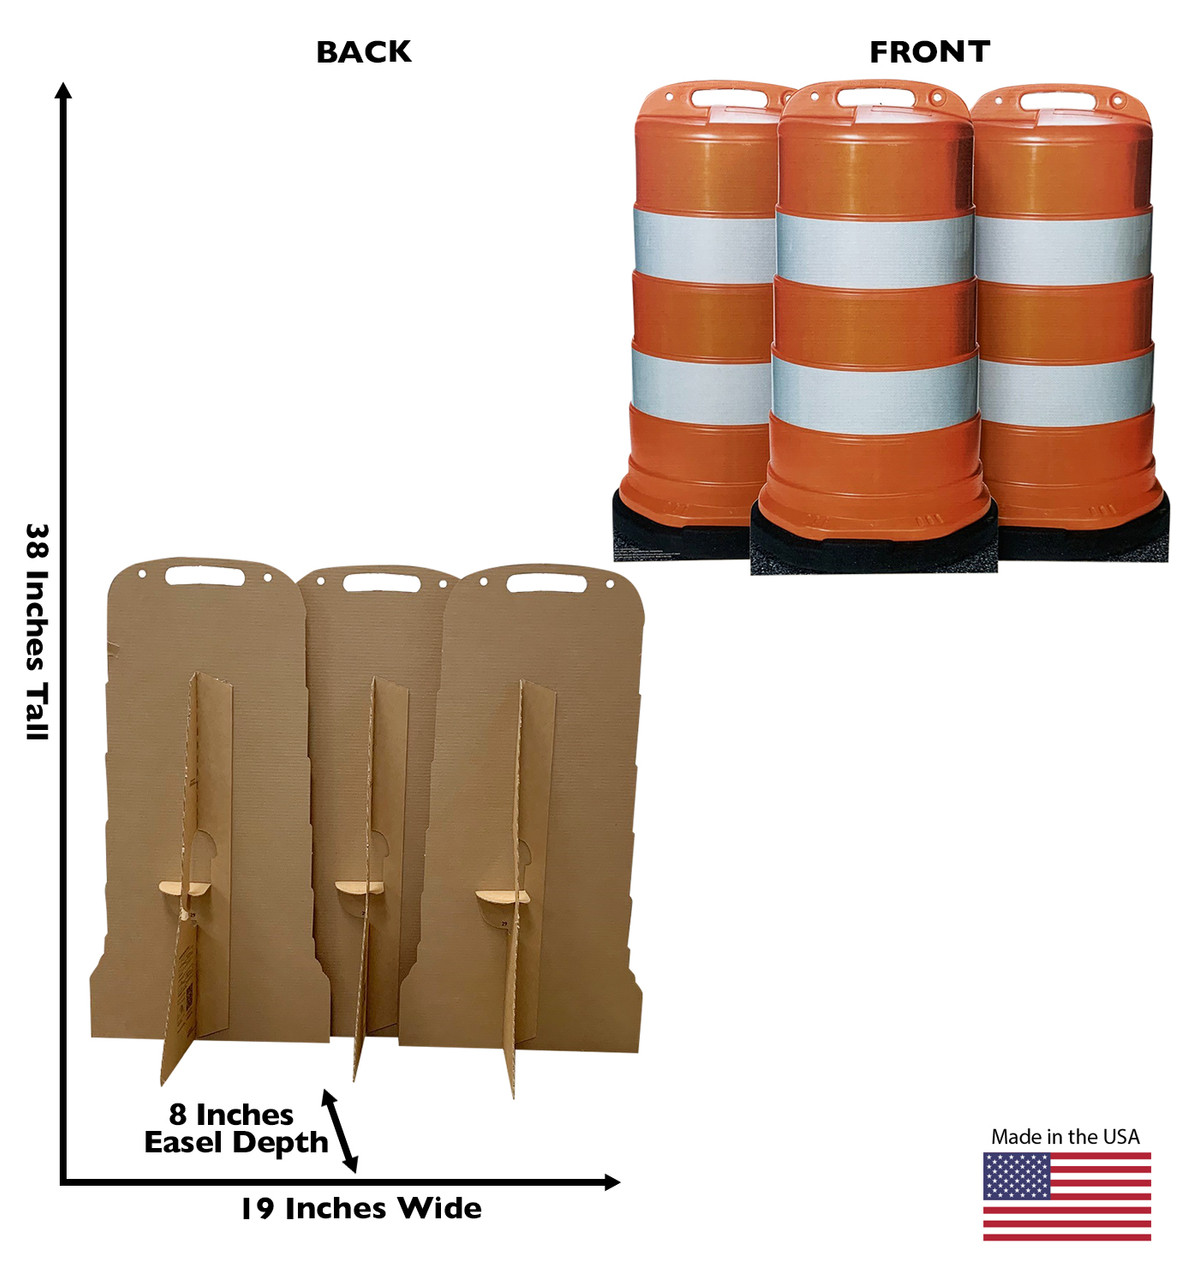 Life-size cardboard standee of construction barrels (set of 3)  with back and front dimensions.